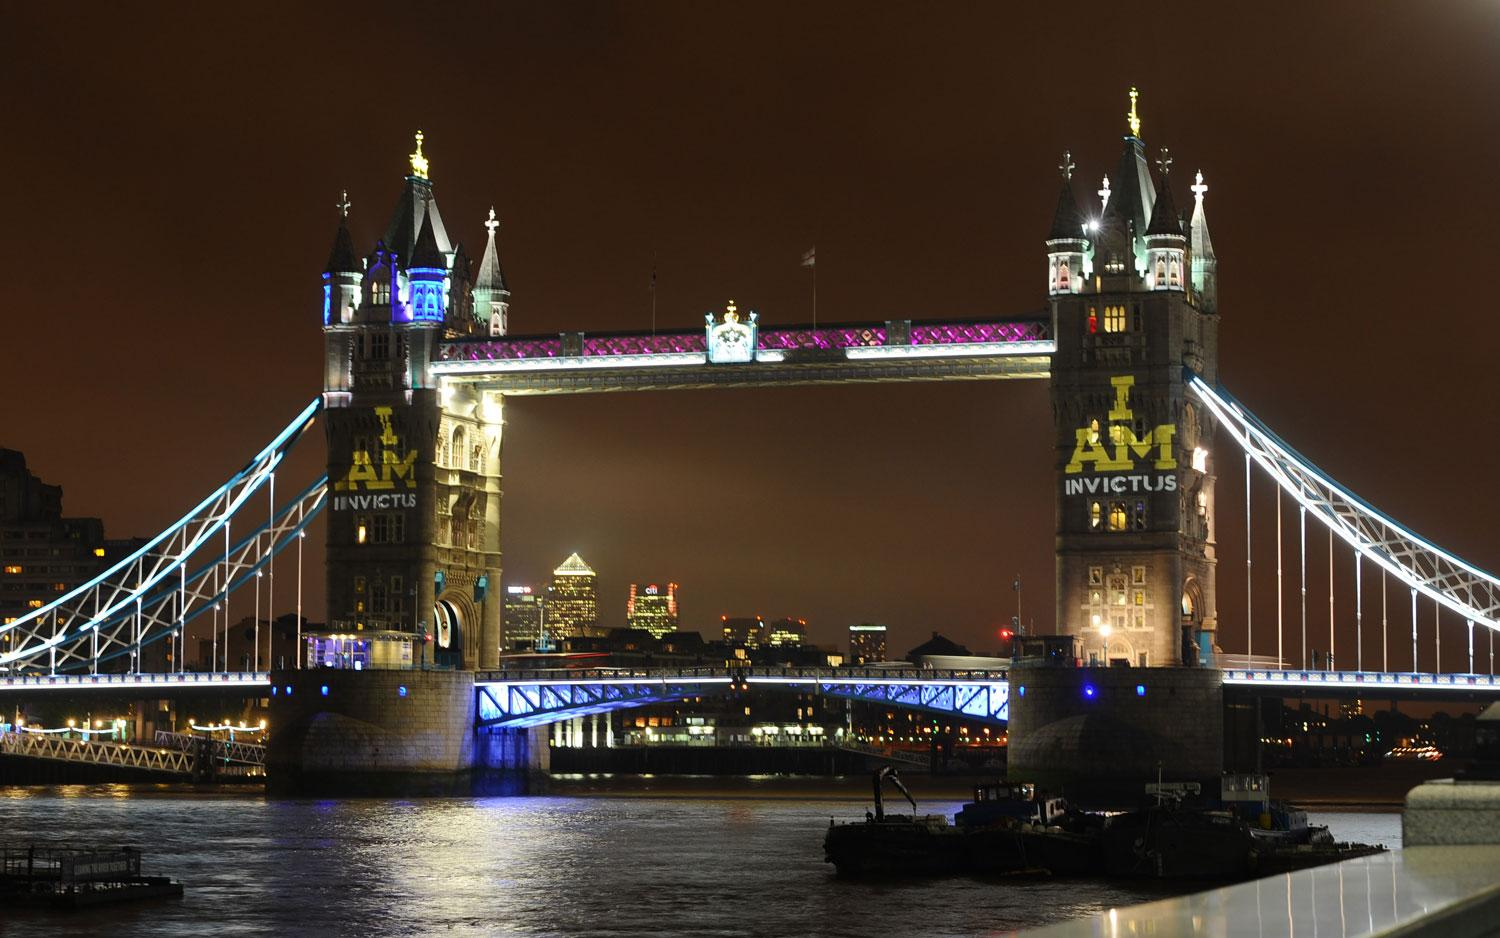 Projection onto Tower Bridge for Invictus Games